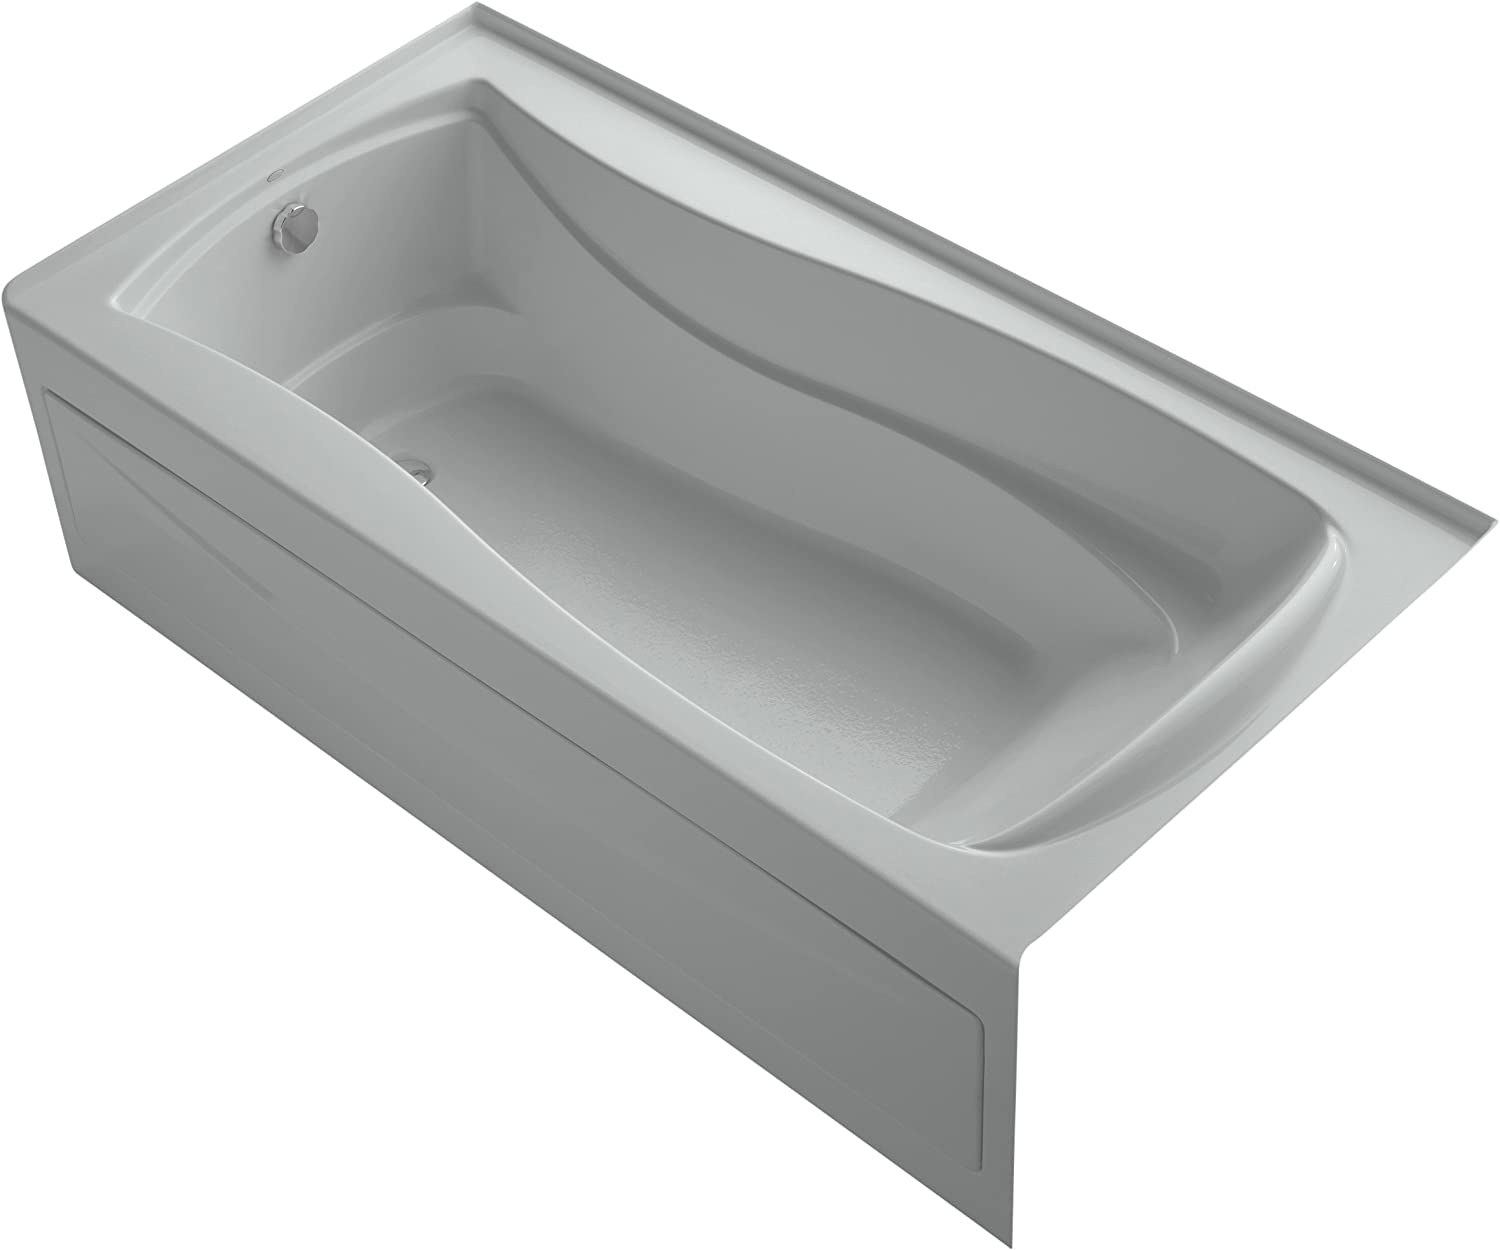 Kohler K 1259 Law 95 Mariposa 72 Inch X 36 Inch Alcove Bath With Bask Heated Surface Integral Apron Tile Flange And Left Hand Drain Ice Grey Home Improvement